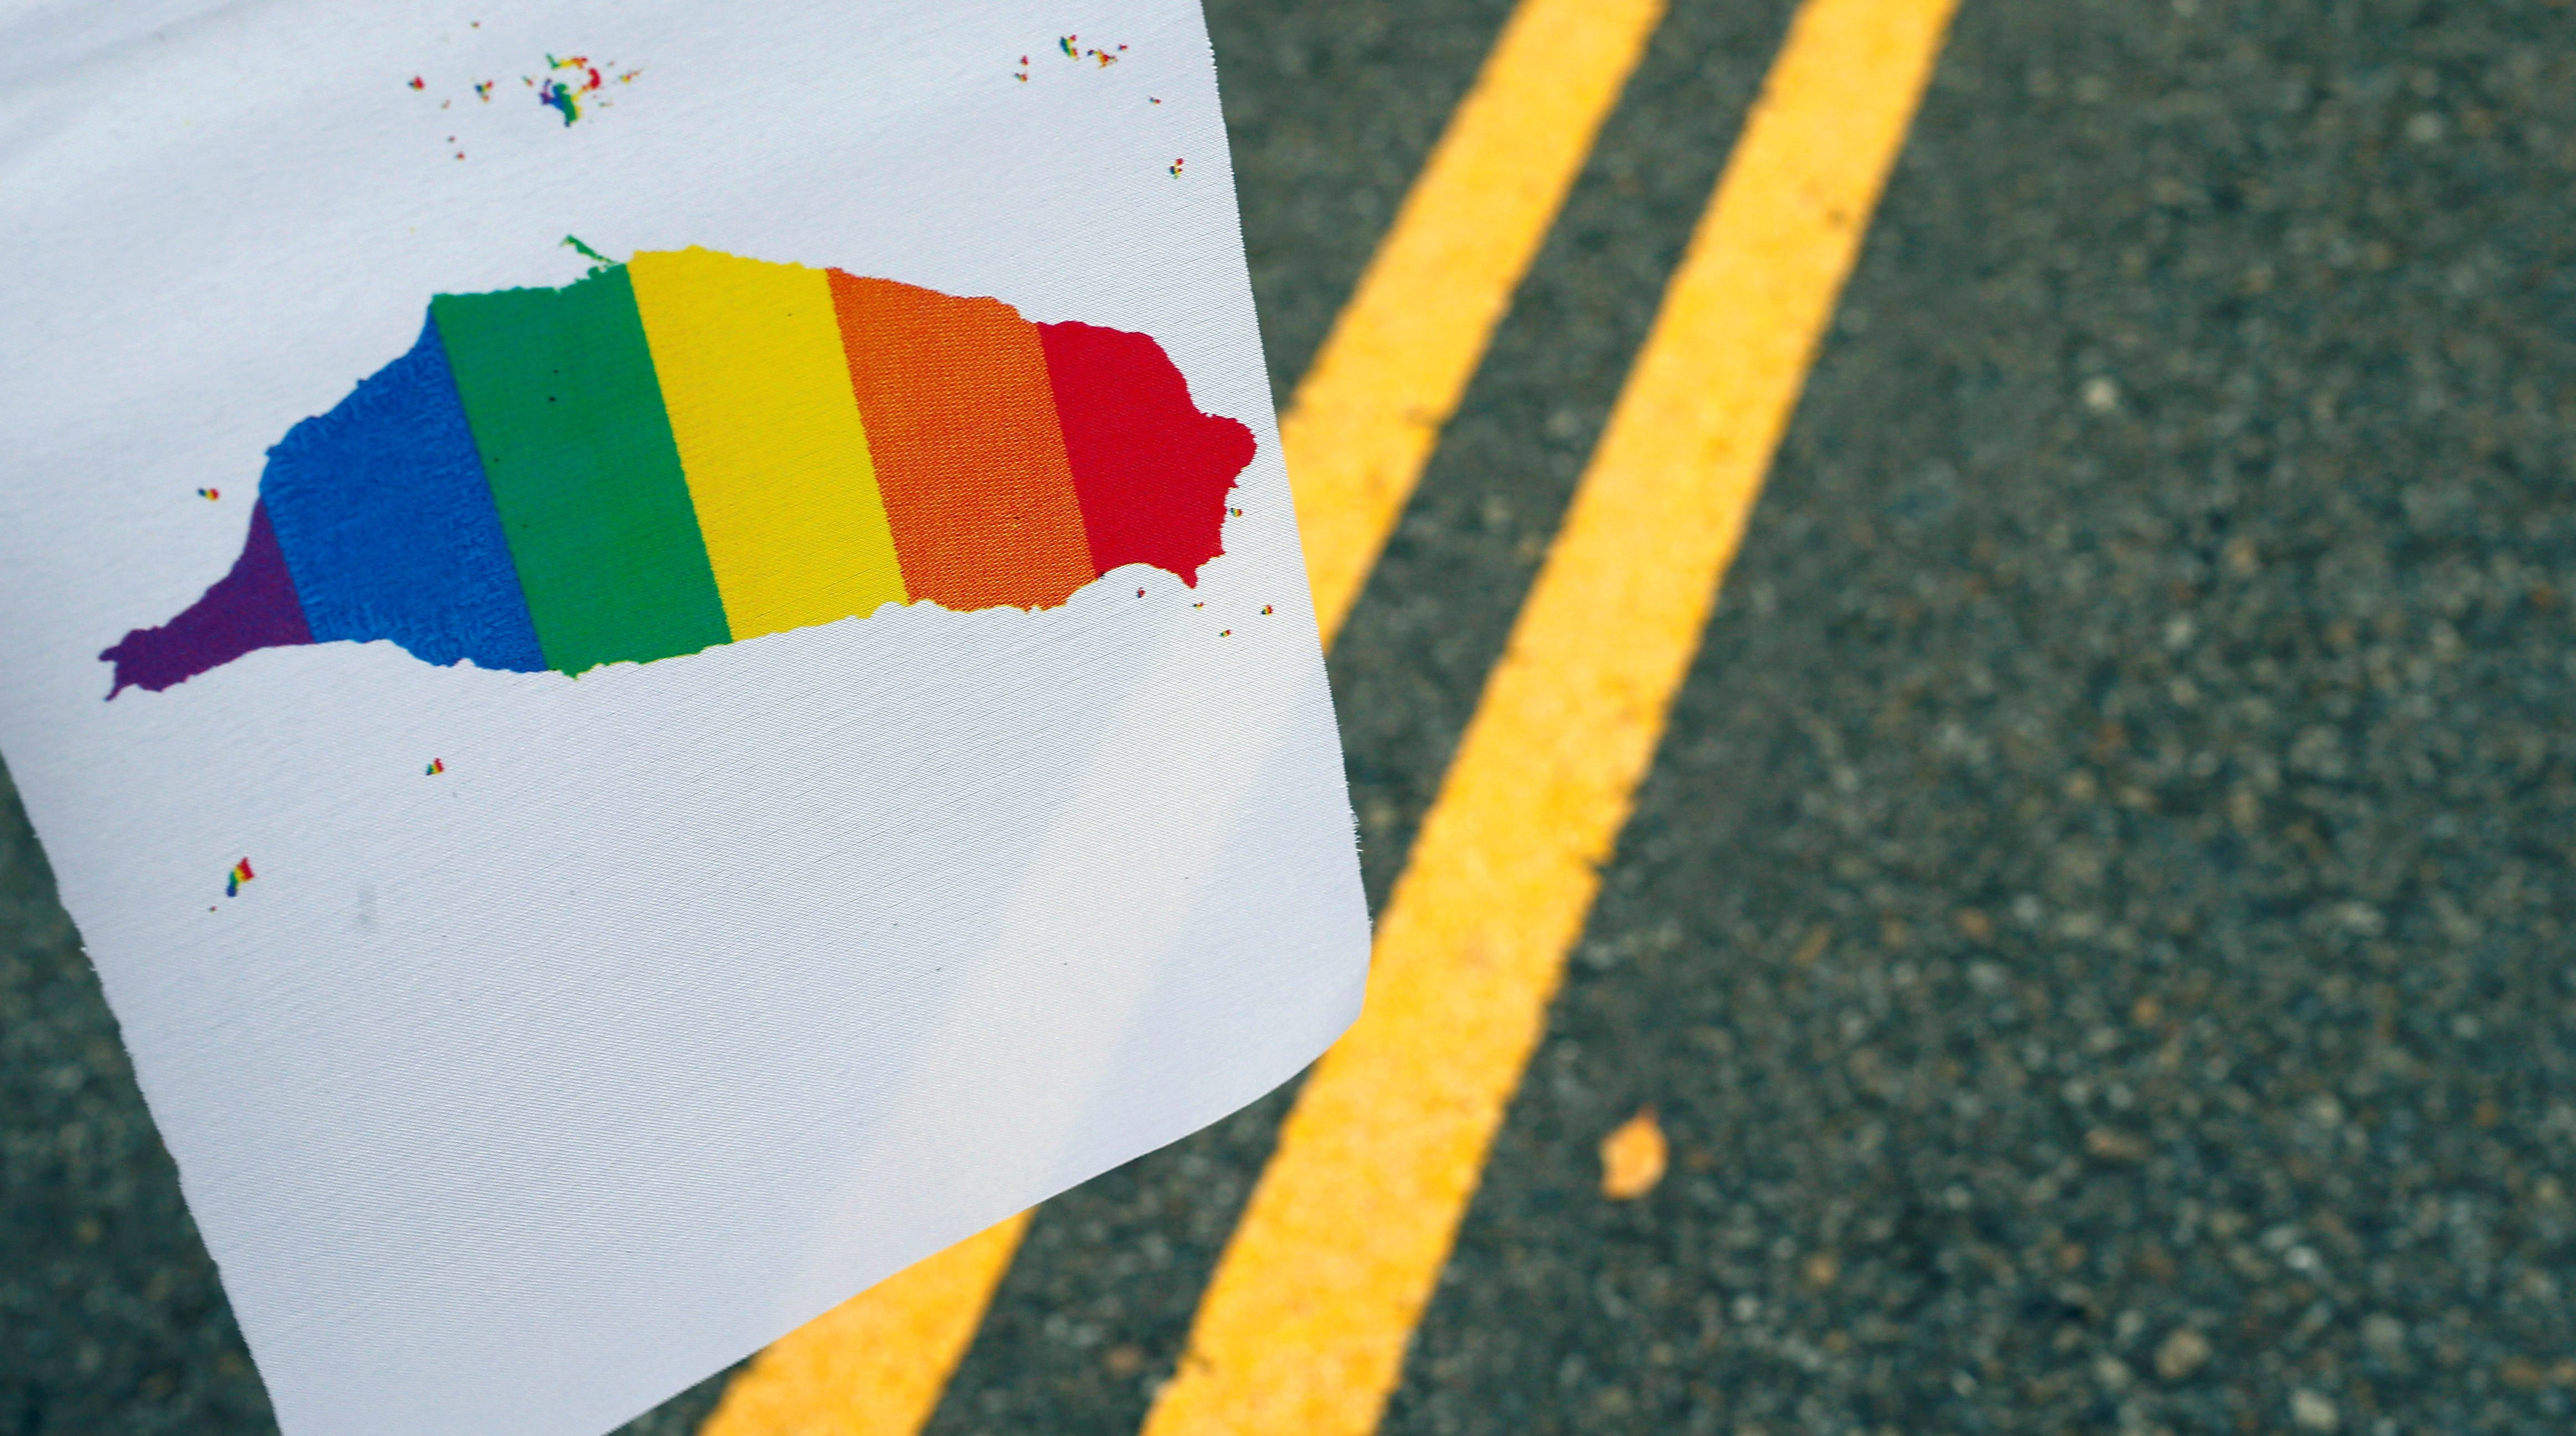 A Taiwan-shaped rainbow flag is seen during a rally ahead of Taiwan's top court ruling on same-sex marriage case which will decide whether it will become the first place in Asia to recognise same-sex marriage, in Taipei